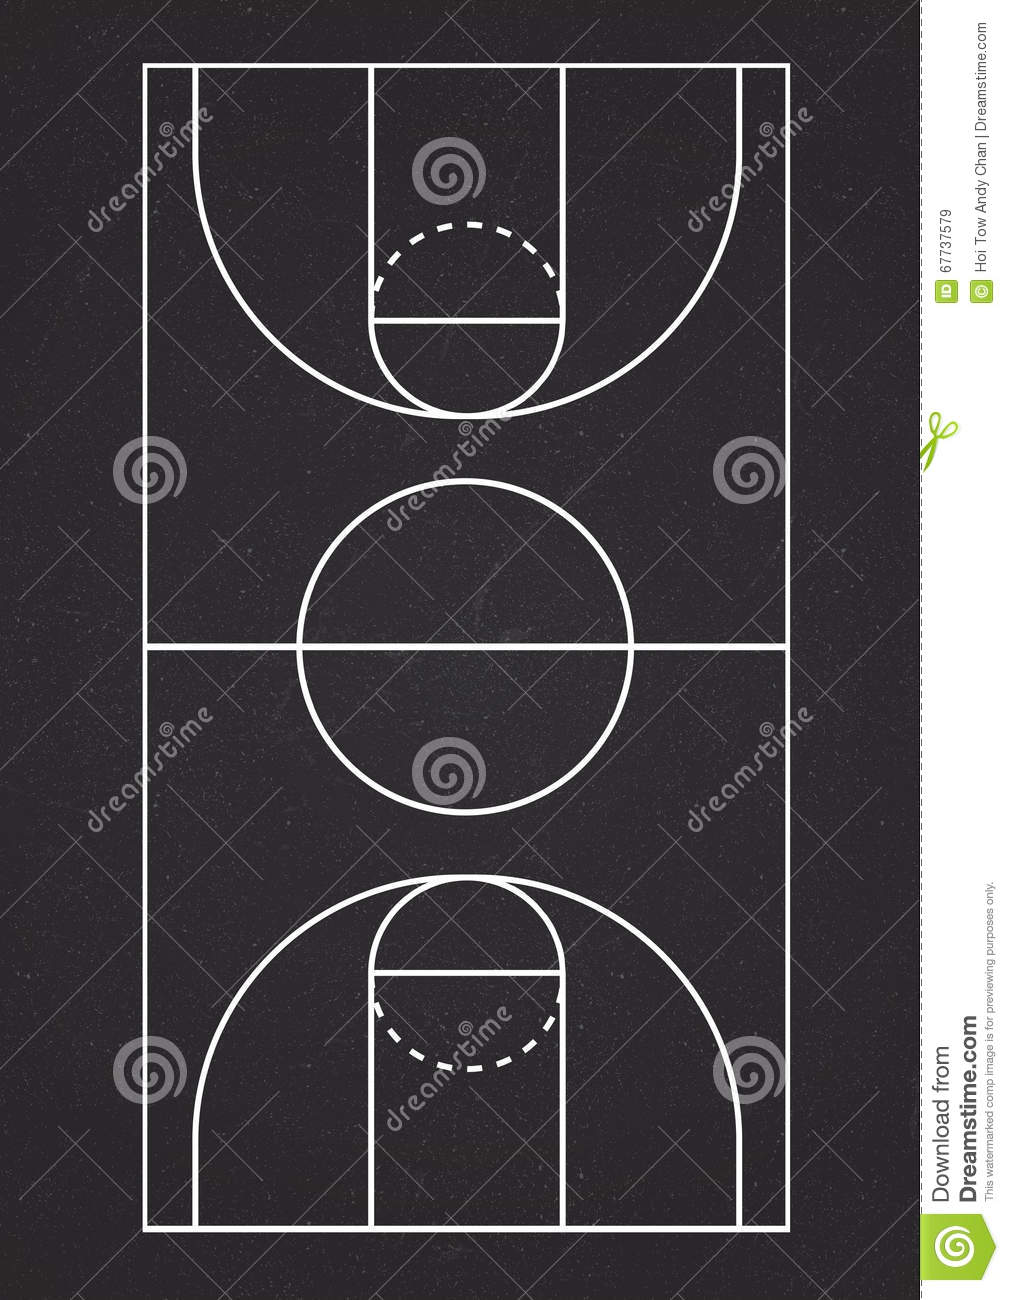 Vertical Basketball Court Line Vector Stock Image Image Of Empty Template 67737579